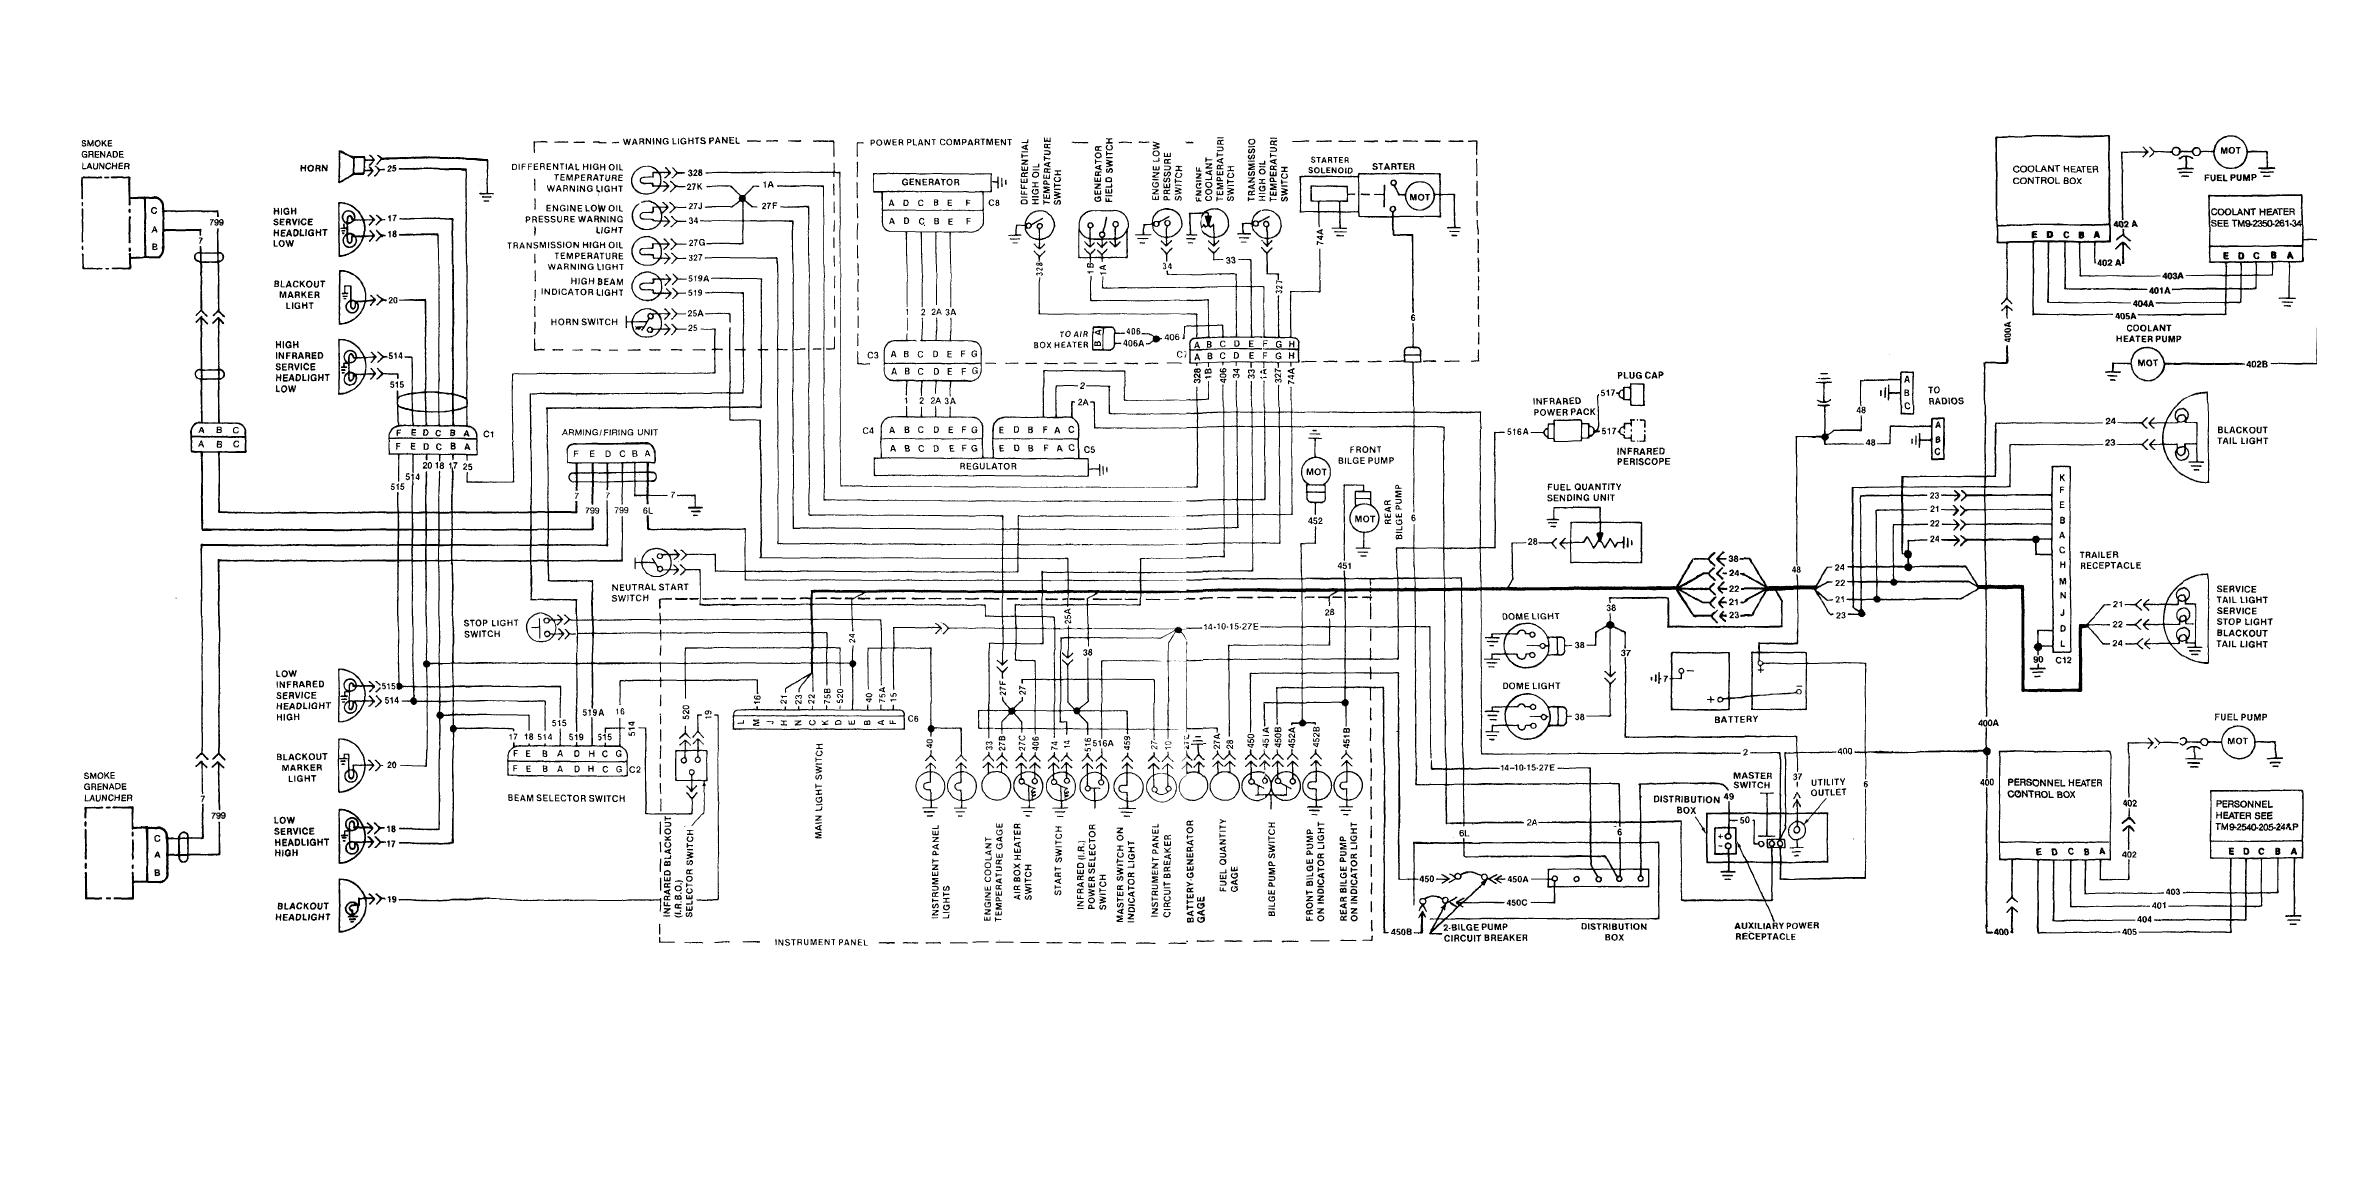 0825760739im?resize=665%2C333 limitorque l120 20 wiring diagram wiring diagram limitorque l120 20 wiring diagram at alyssarenee.co